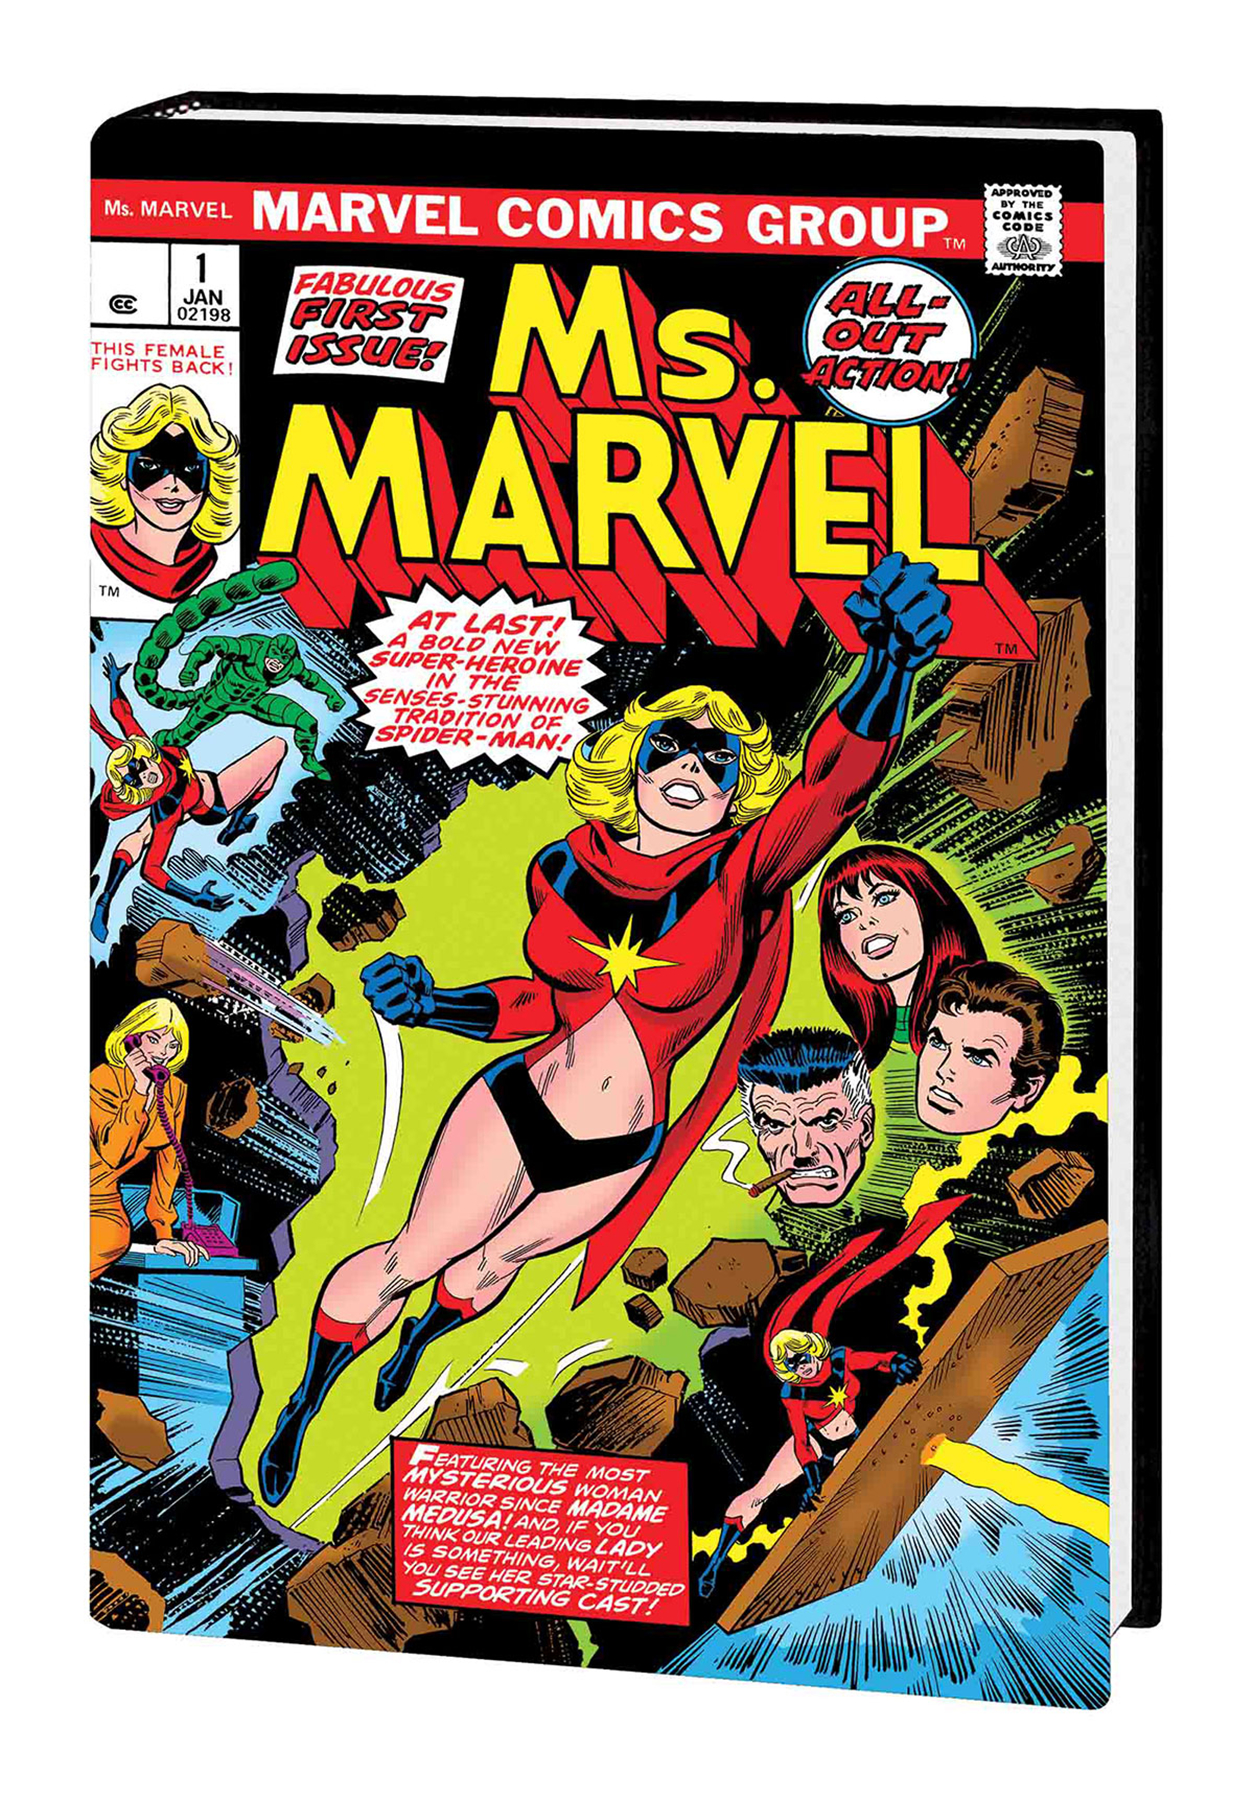 aug181070 - captain marvel ms marvel a hero is born omnibus